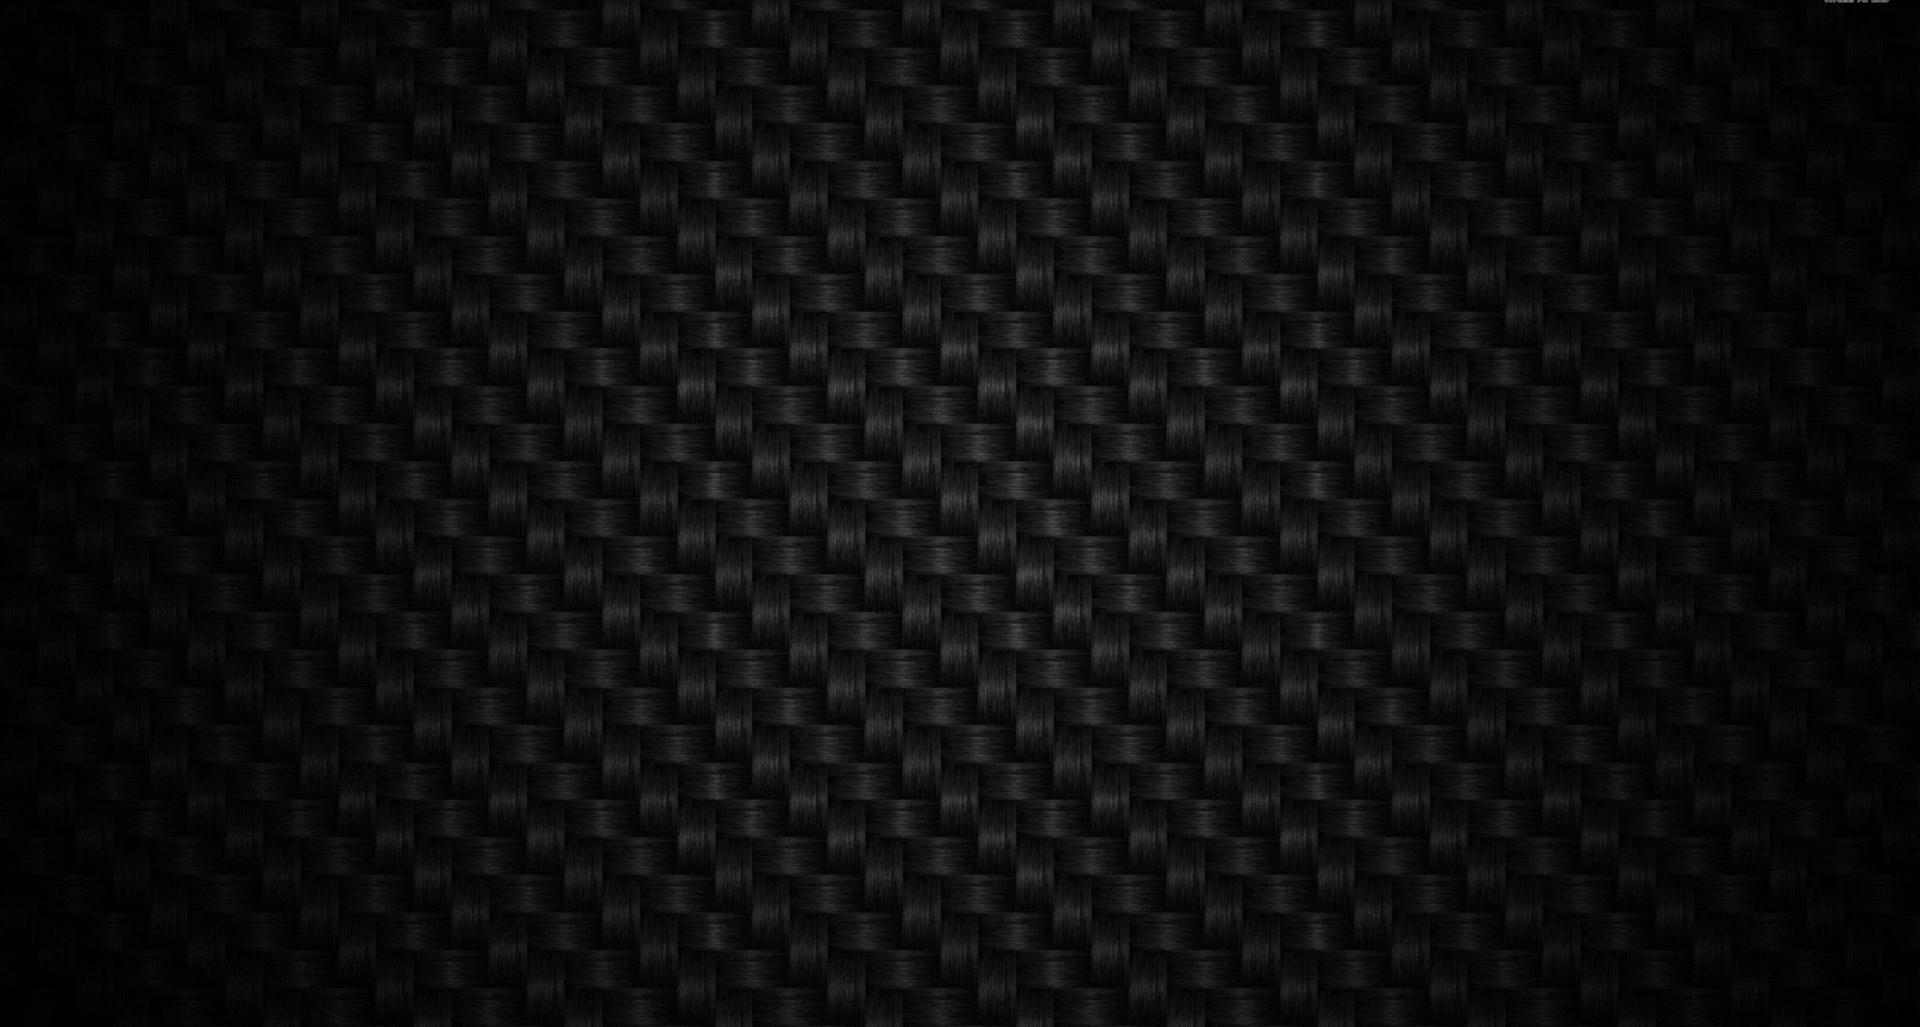 Basket weave pattern wallpapers HD quality